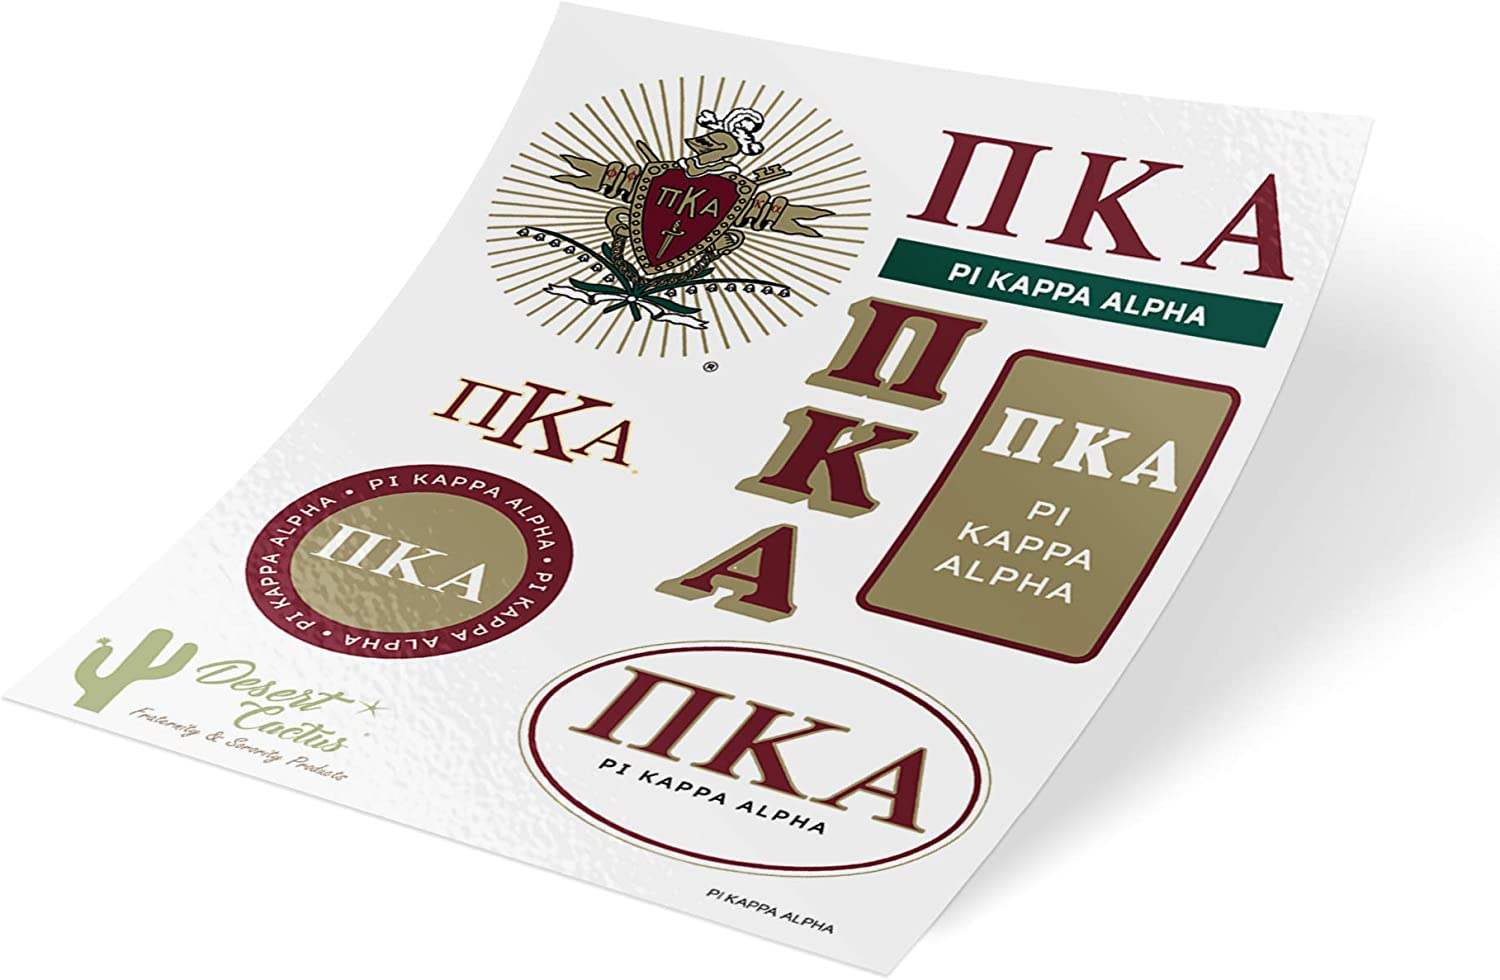 Pi Kappa Alpha Pike Standard Sticker Sheet Decal Laptop Water Bottle Car (Full Sheet - Standard)